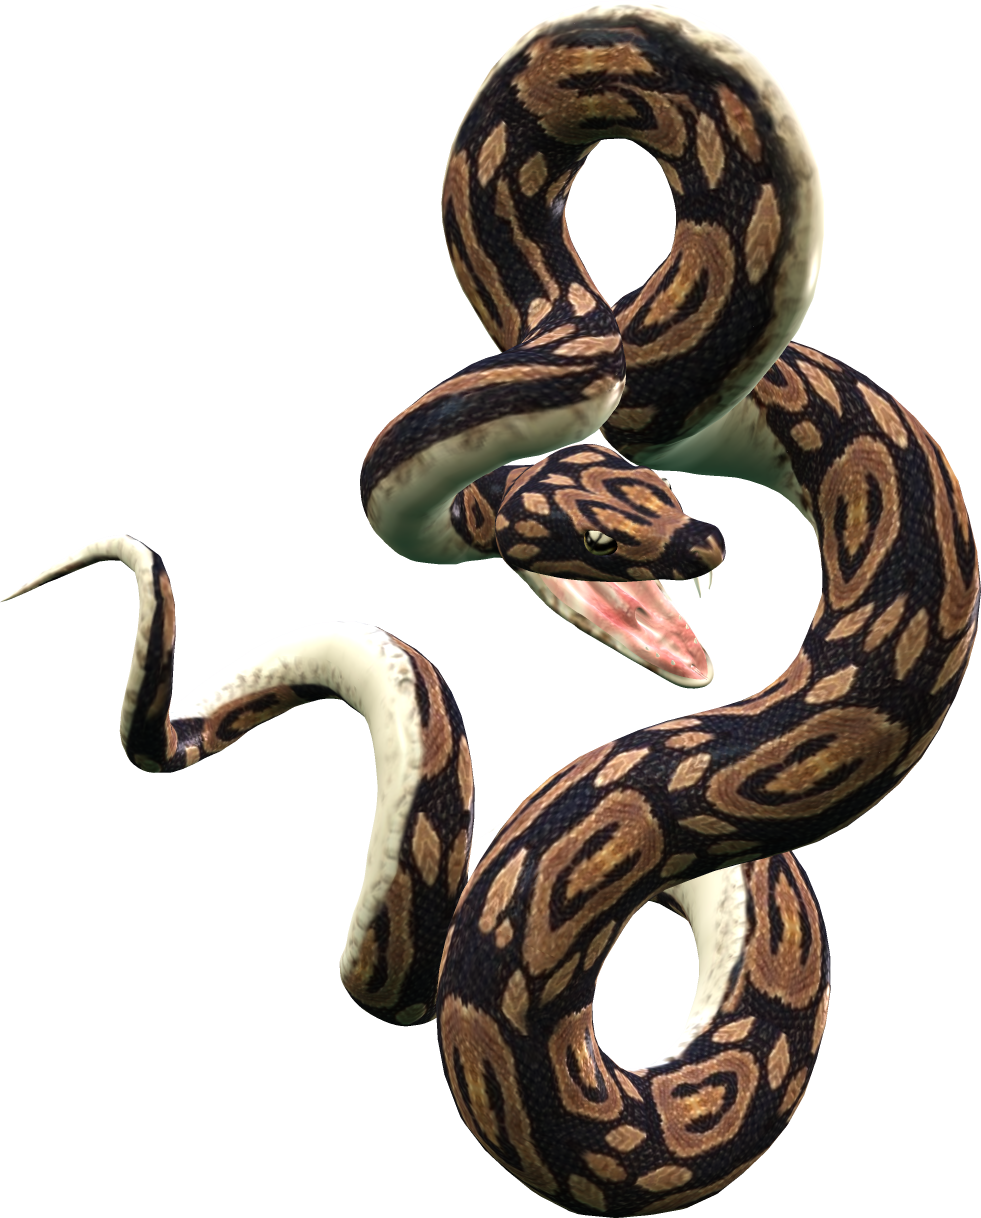 Carpet drawing python snake. Png transparent images pluspng